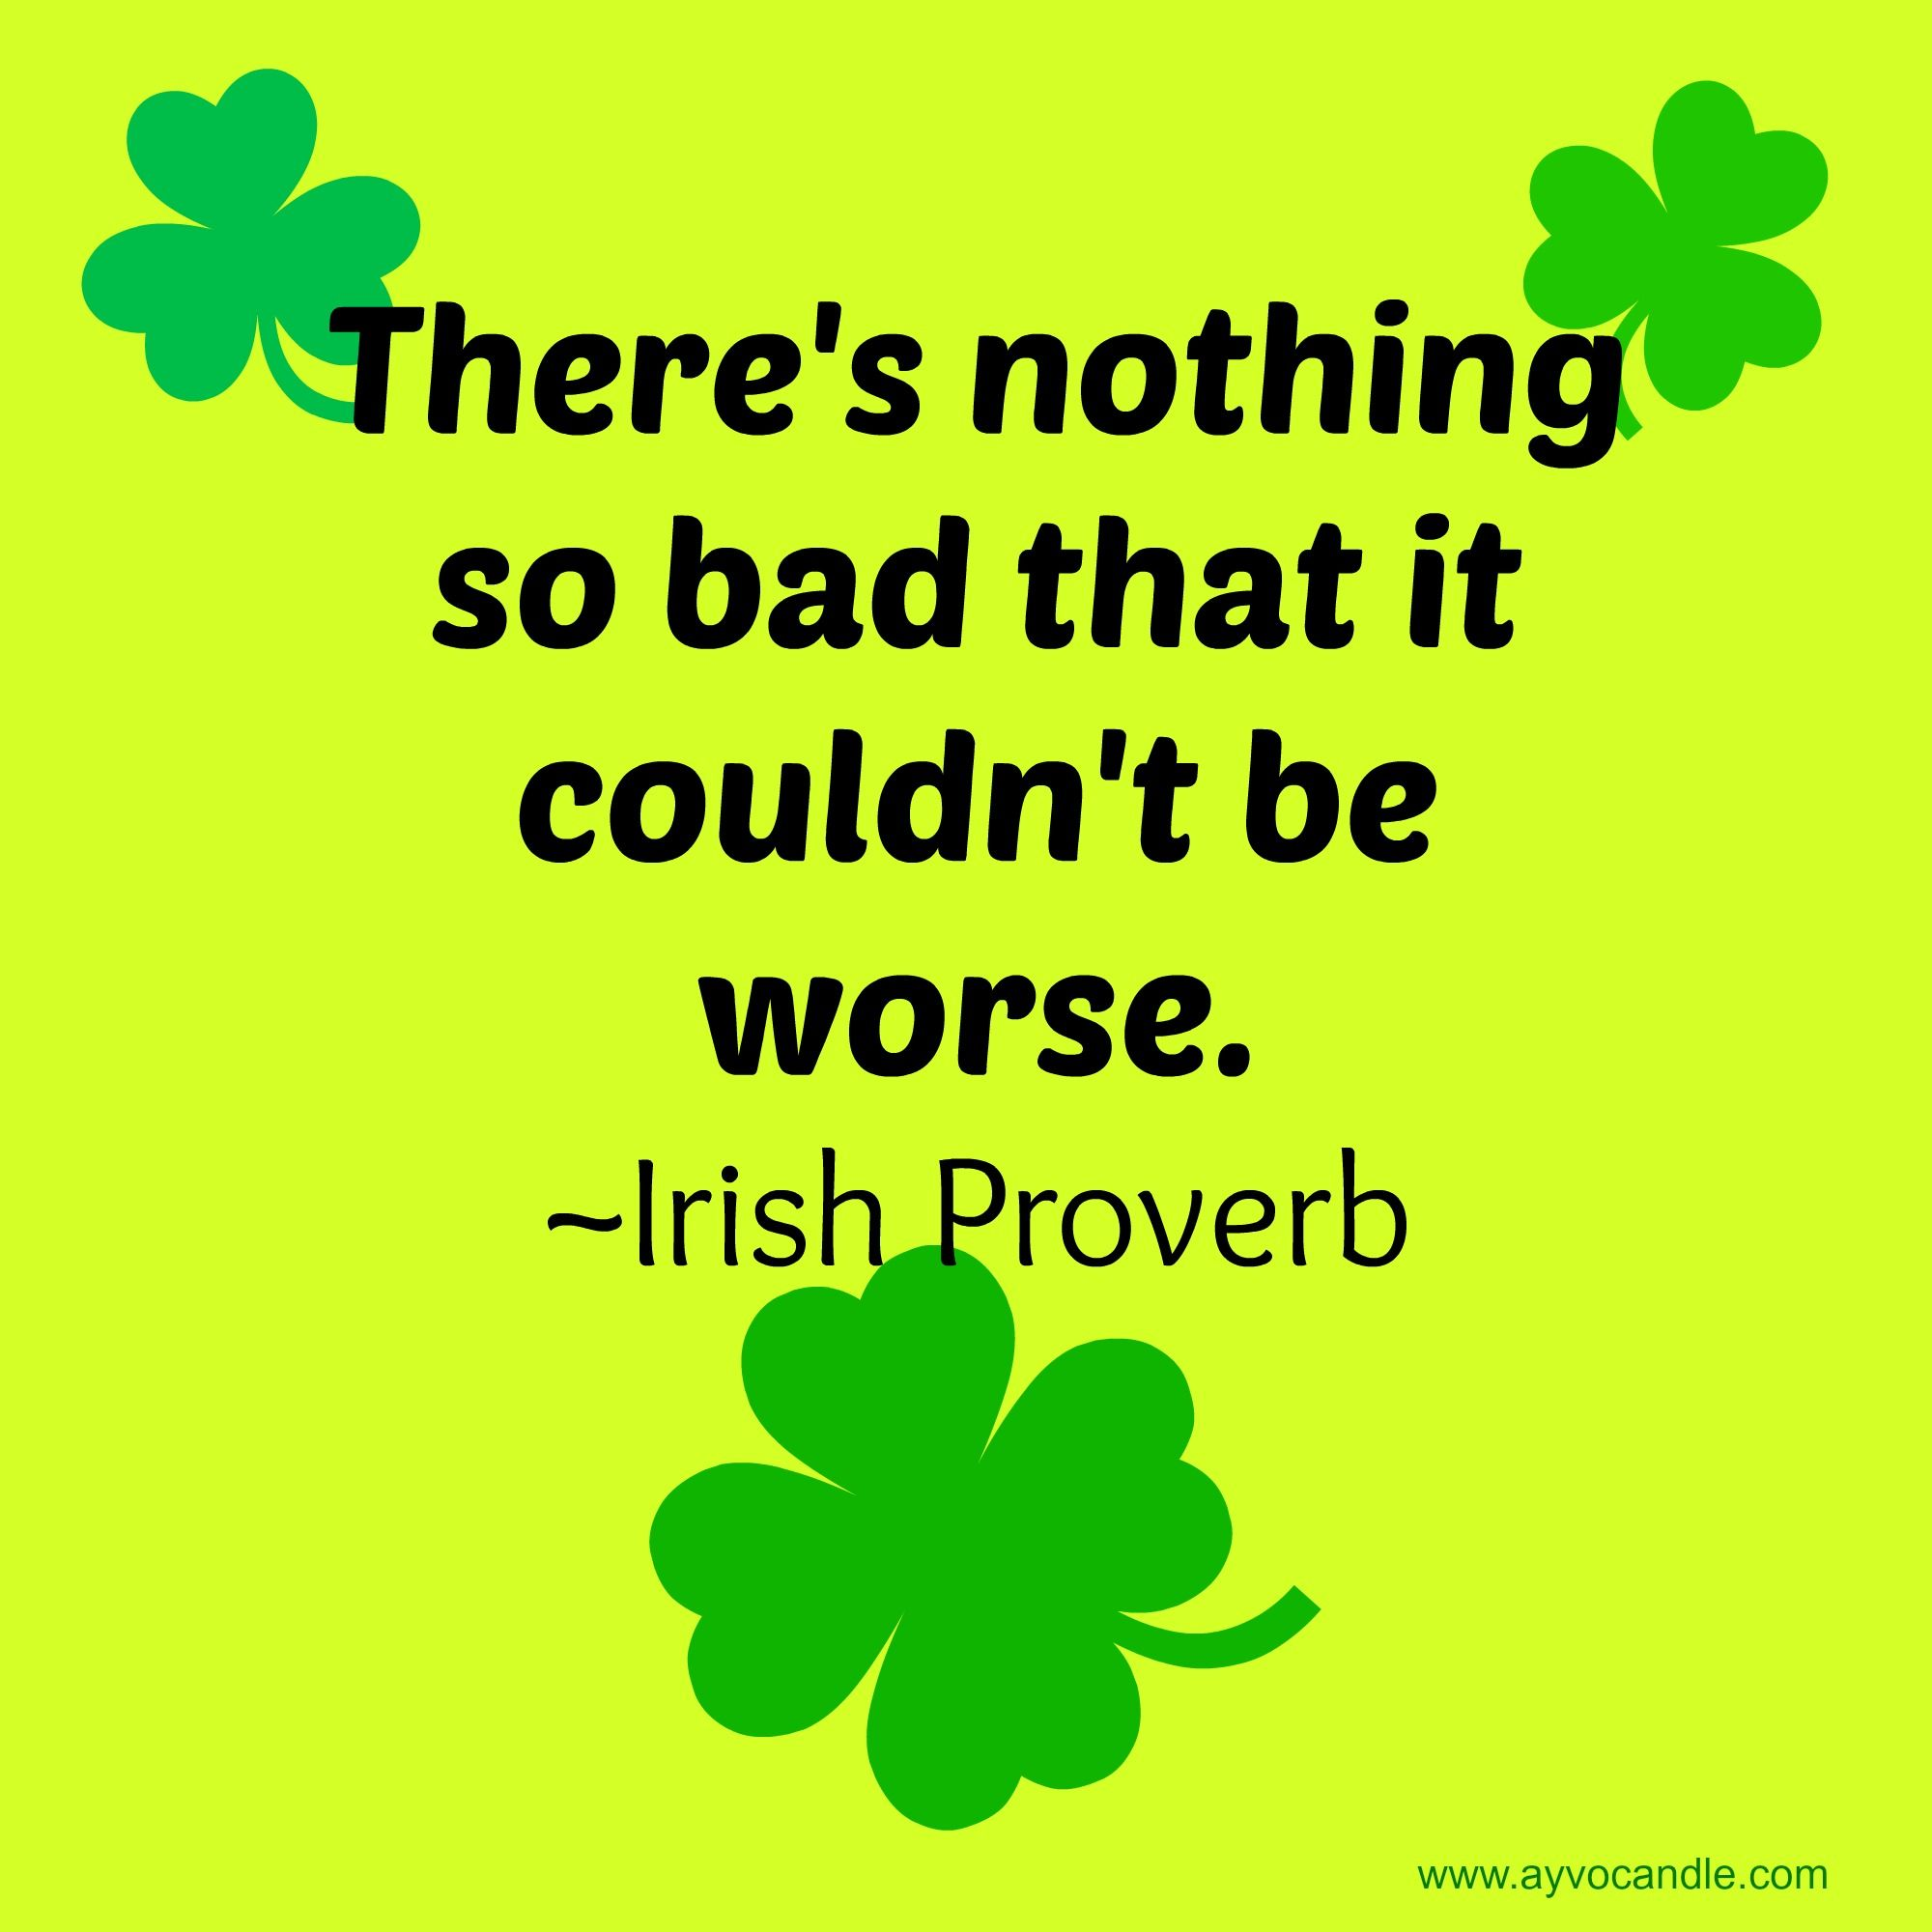 Famous Irish Quotes About Life There's Nothing So Bad That It Couldn't Be Worseirish Proverb